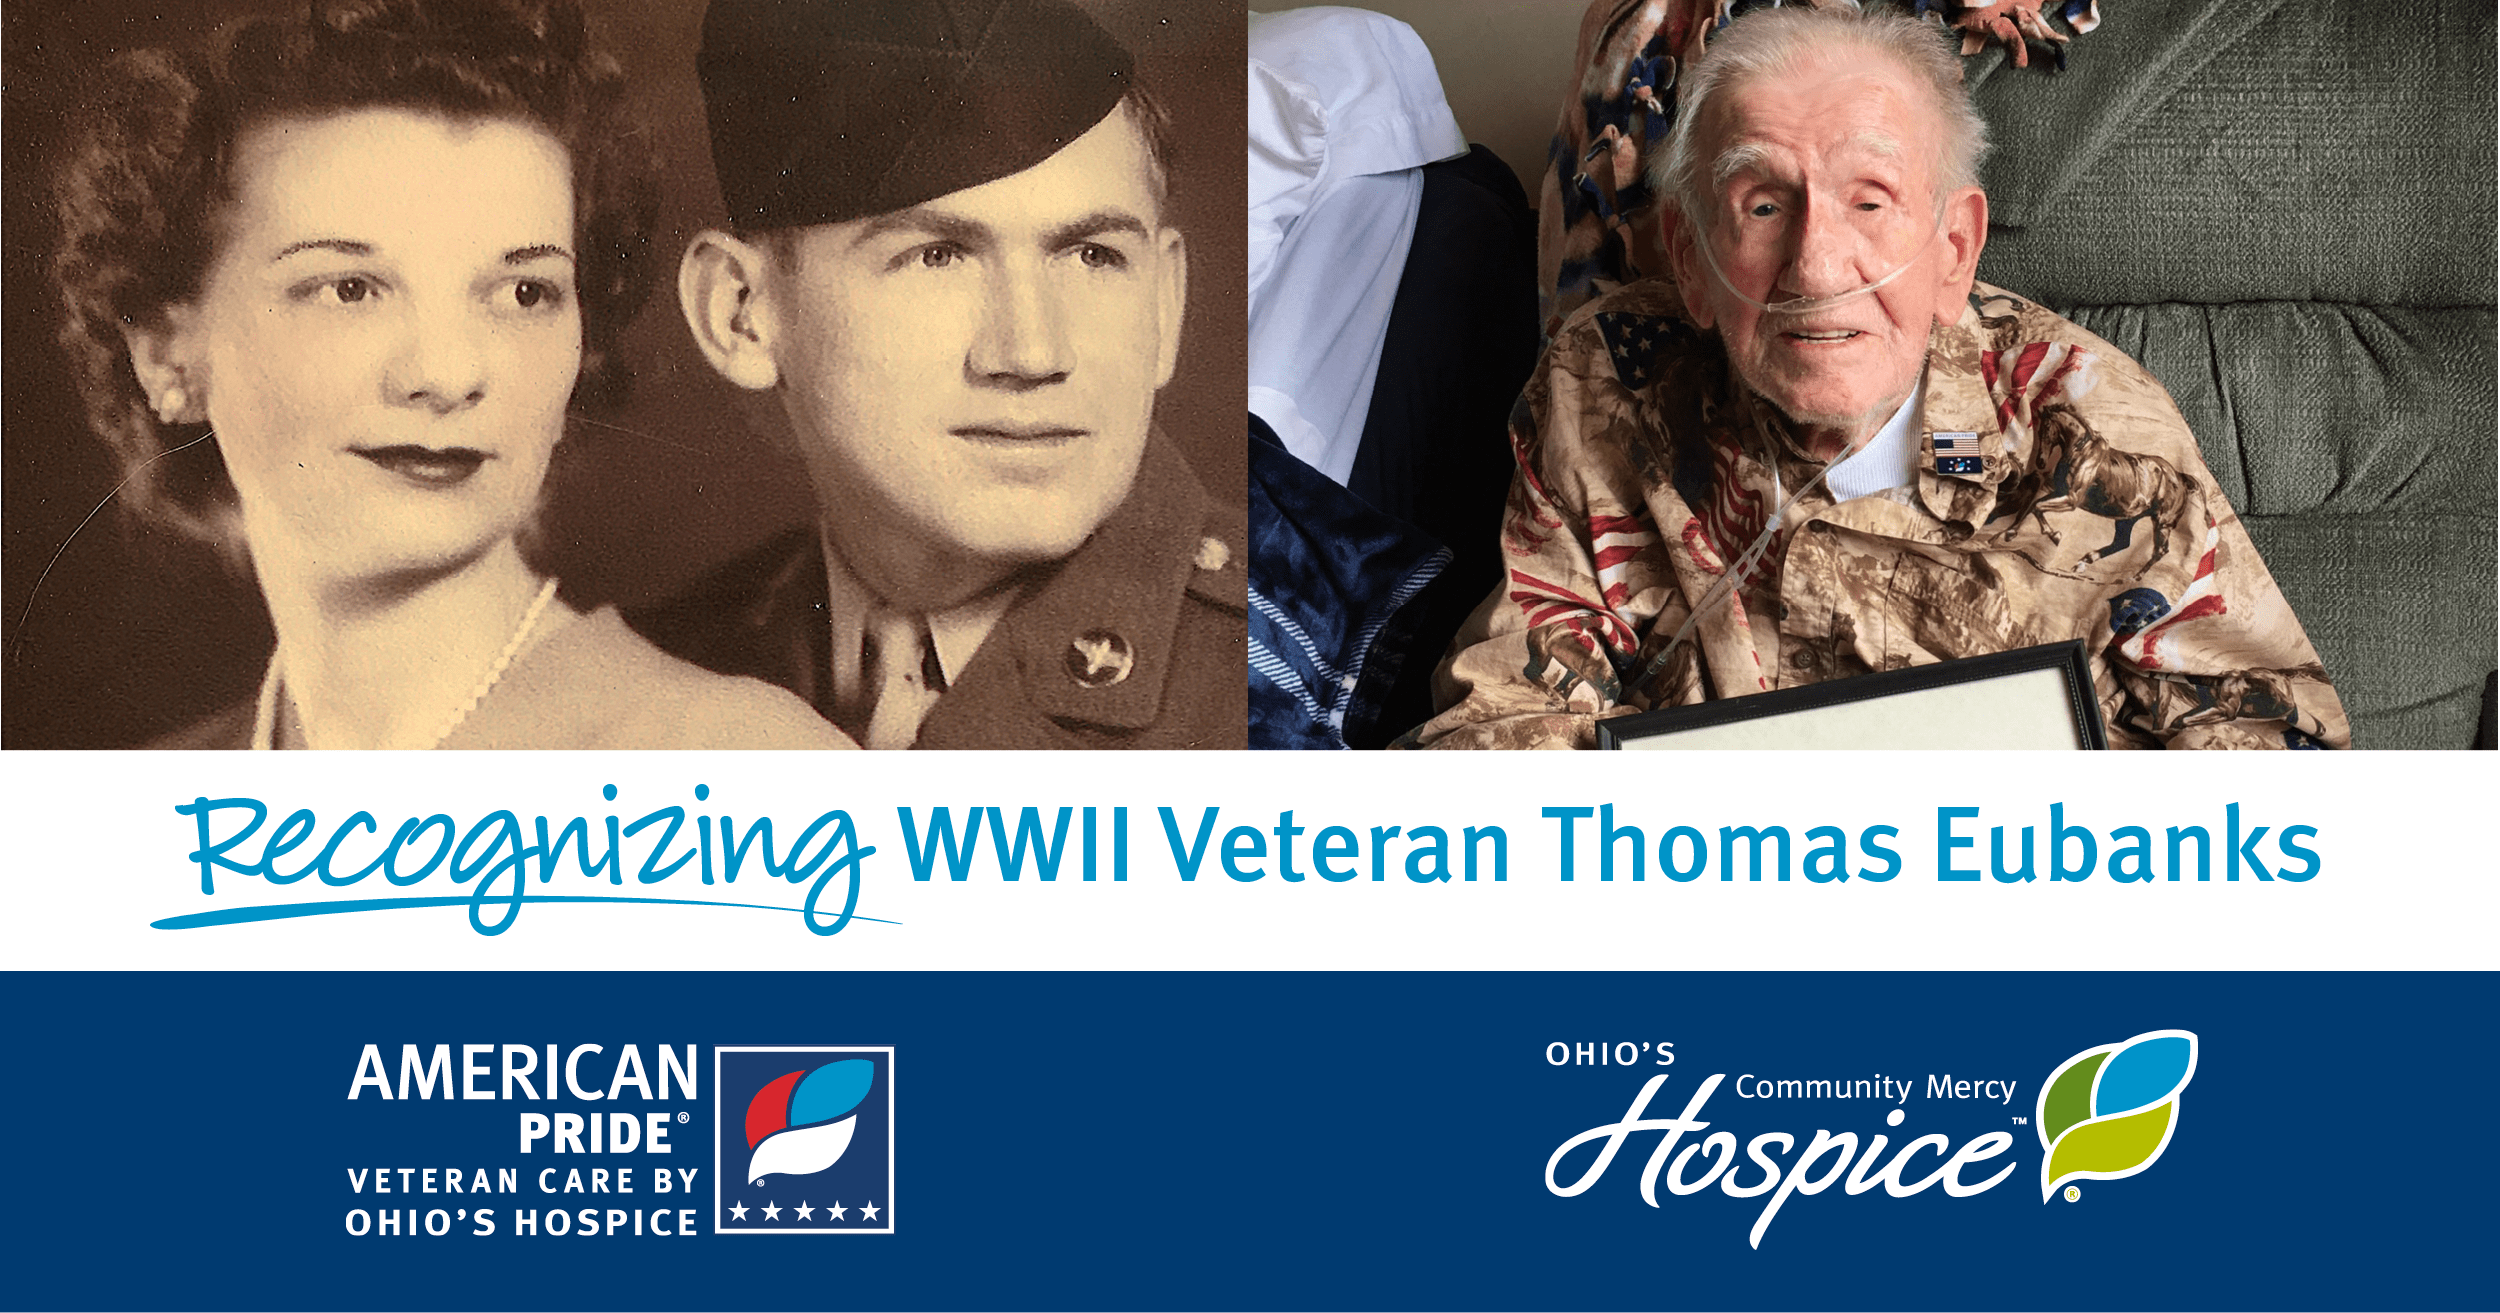 Recognizing WWII Veteran Thomas Eubanks